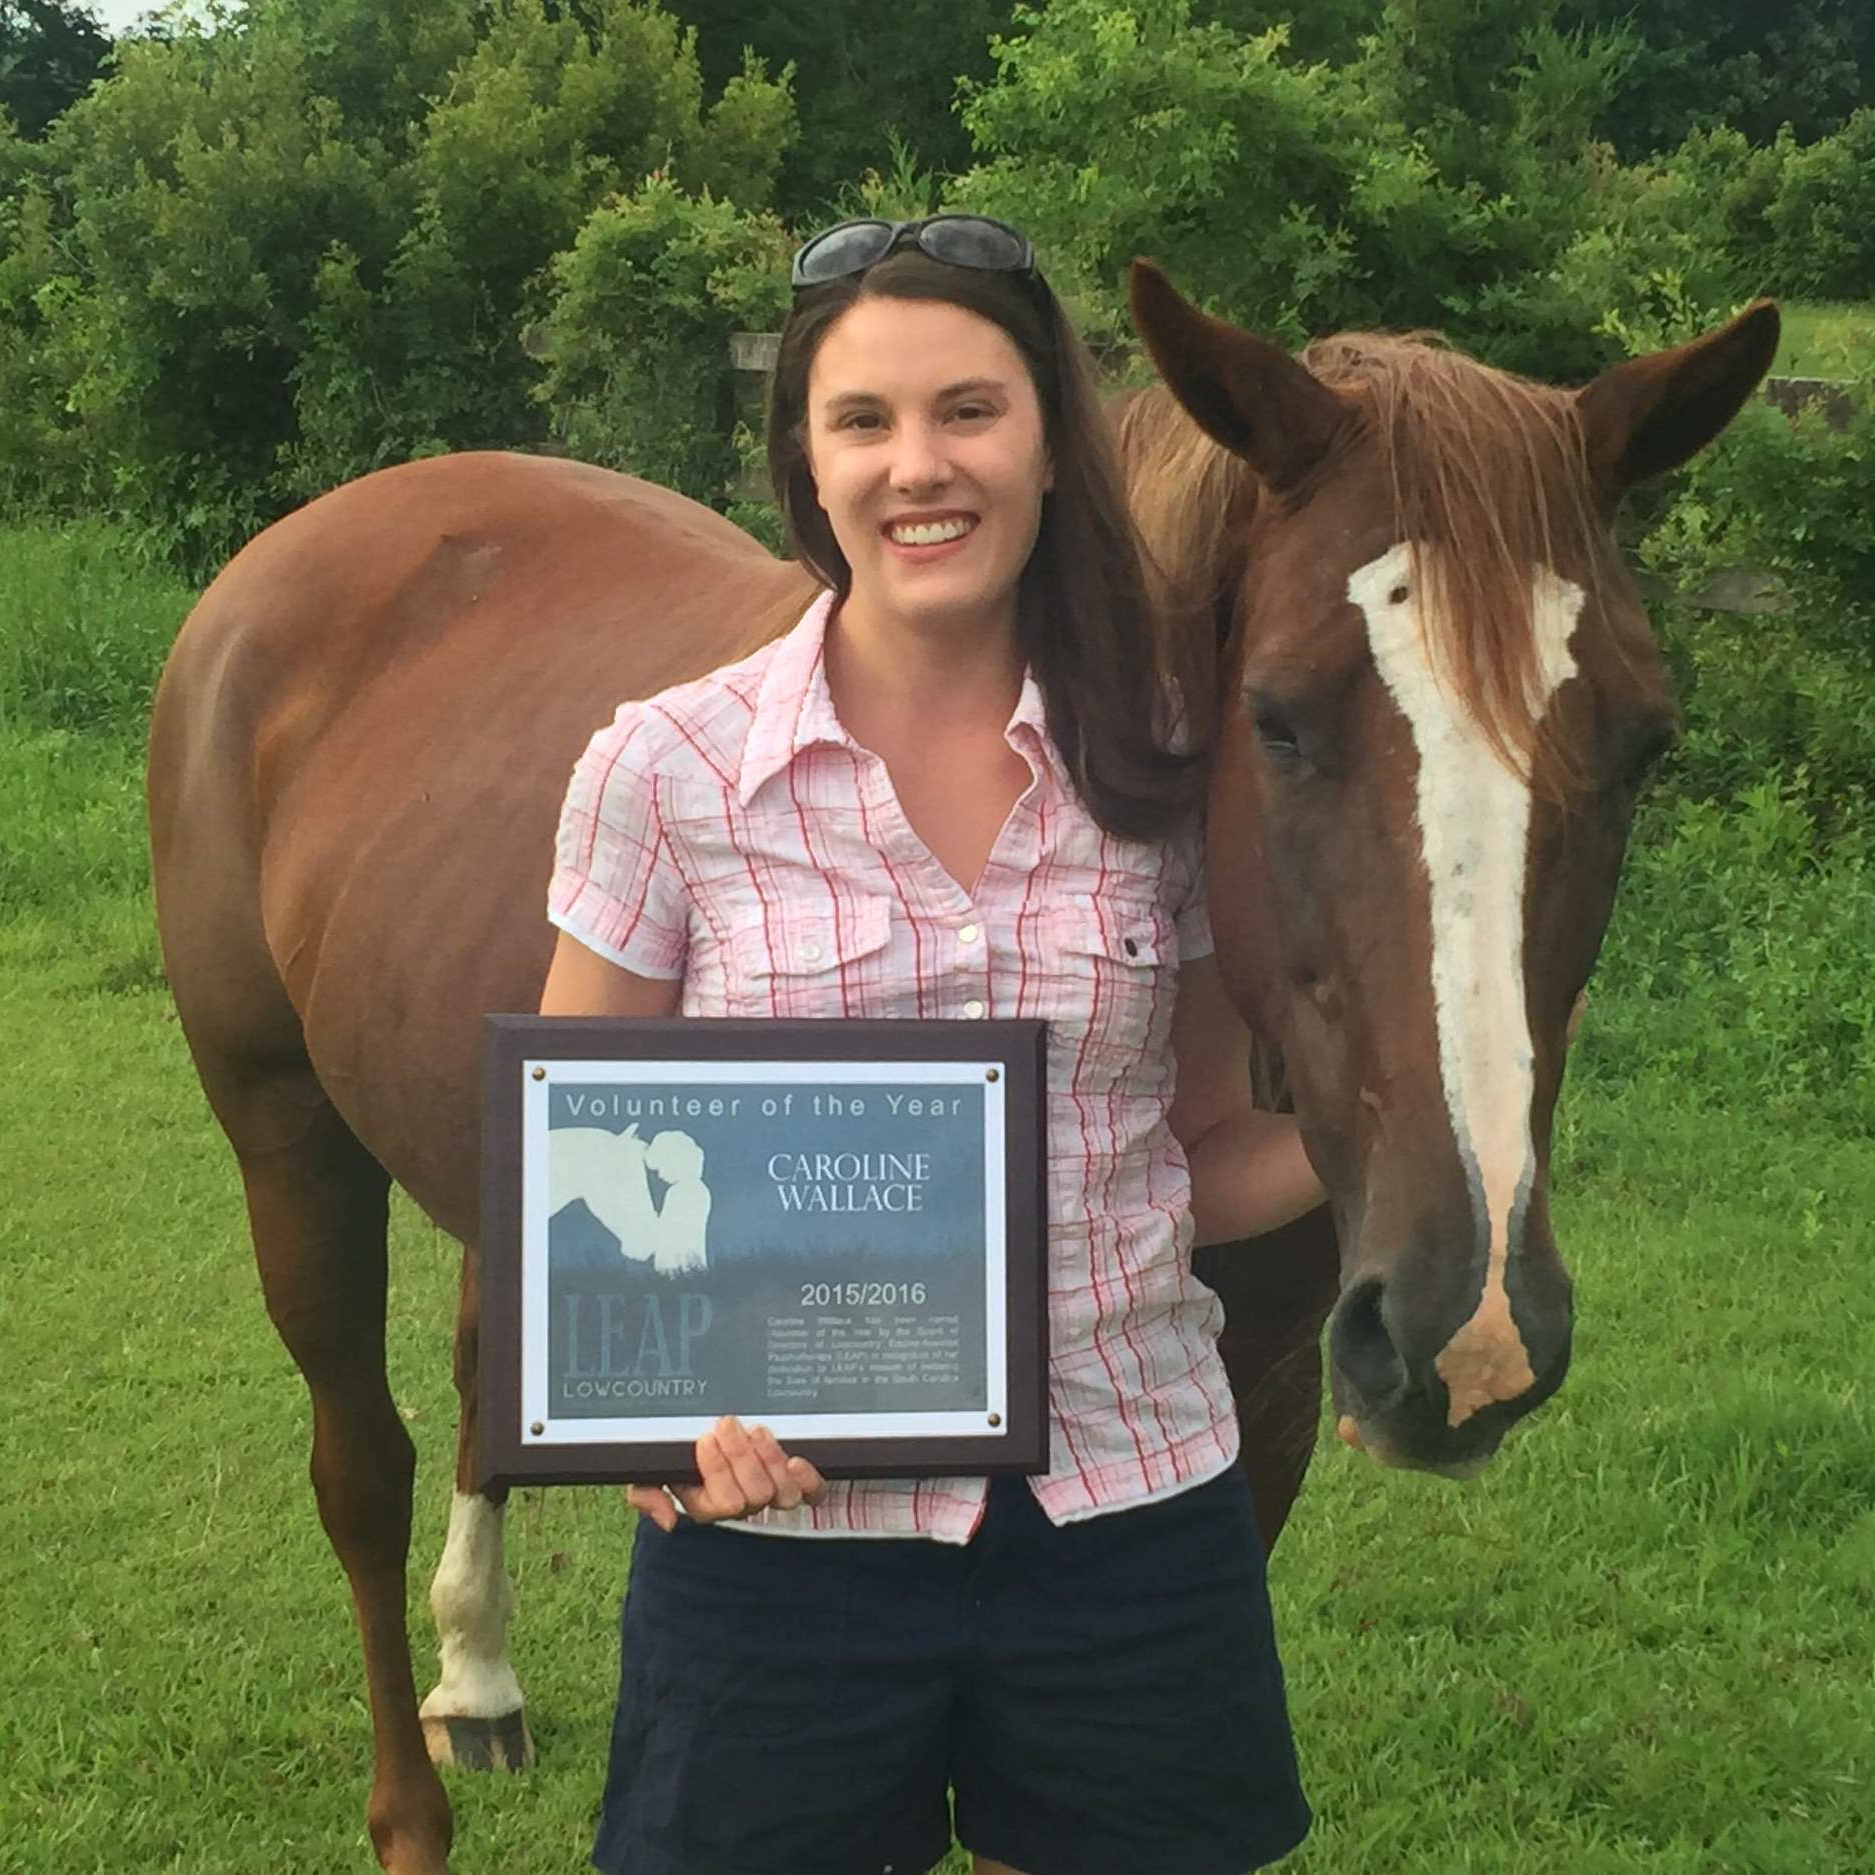 VOLUNTEER OF YEAR 2015 ~ CAROLINE WALLACE    As our volunteer coordinator, Caroline keeps our the volunteer schedule fluid, trains volunteers,herd fed, barn tidy, represents LEAP at the Johns Island Farmer market and regularly mowing the yards. She is the person who always goes above and beyond. THANK YOU Caroline! You are very appreciated by LEAP's humans and horses.